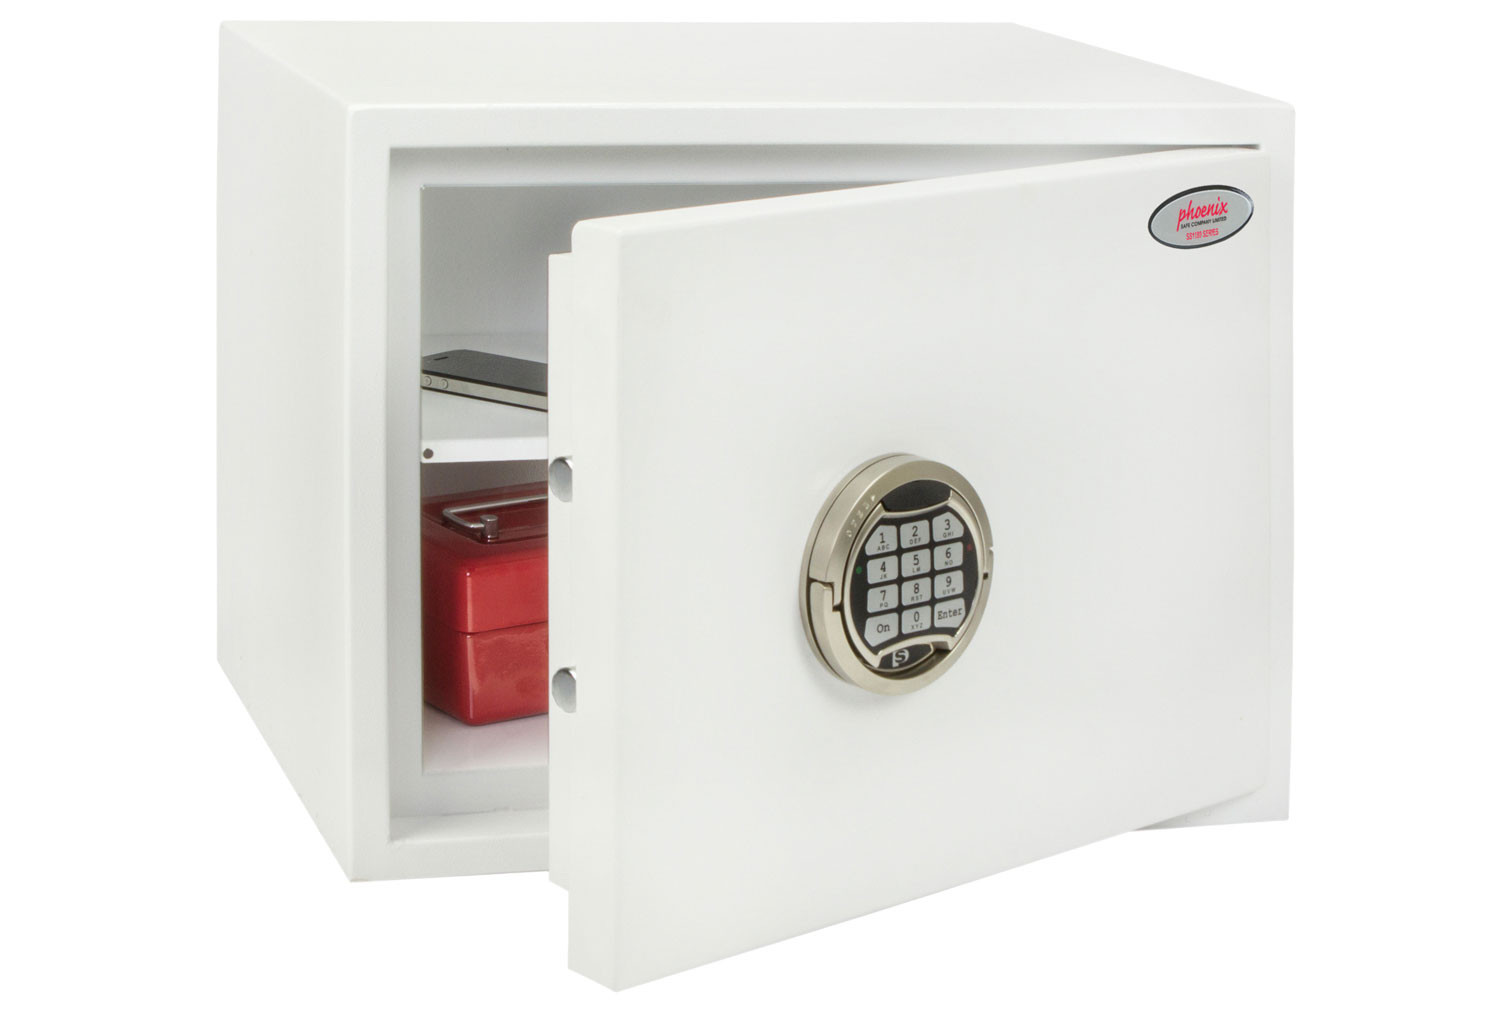 Phoenix Fortress SS1182E Security Safe With Electronic Lock (24ltrs)